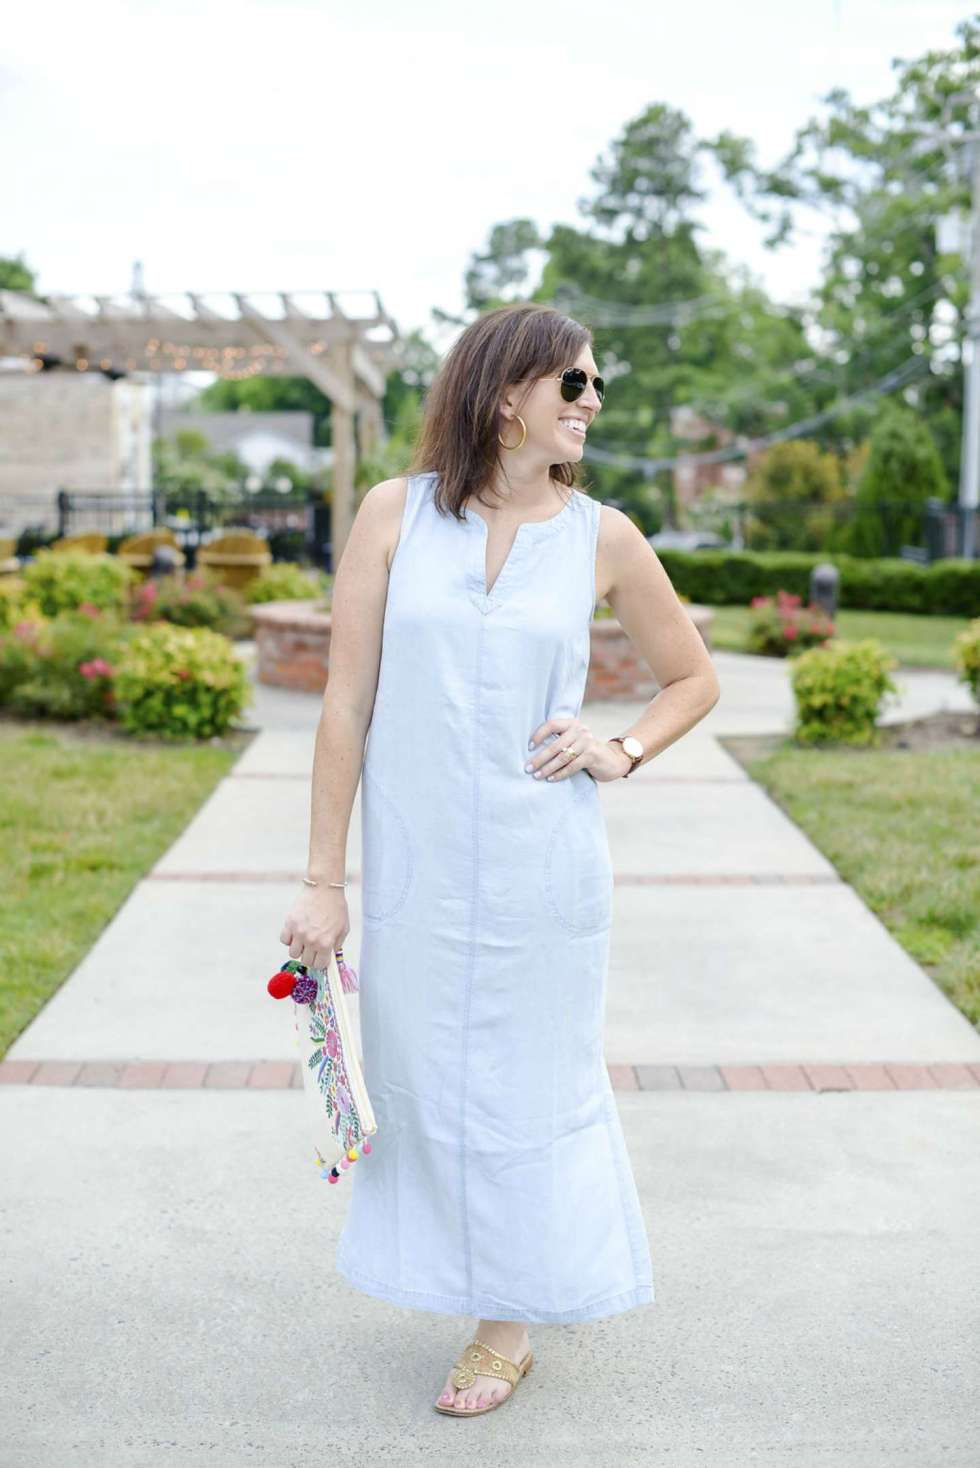 Chambray Maxi Dress + a Tassel Clutch - @mbg0112 - I'm Fixin' To